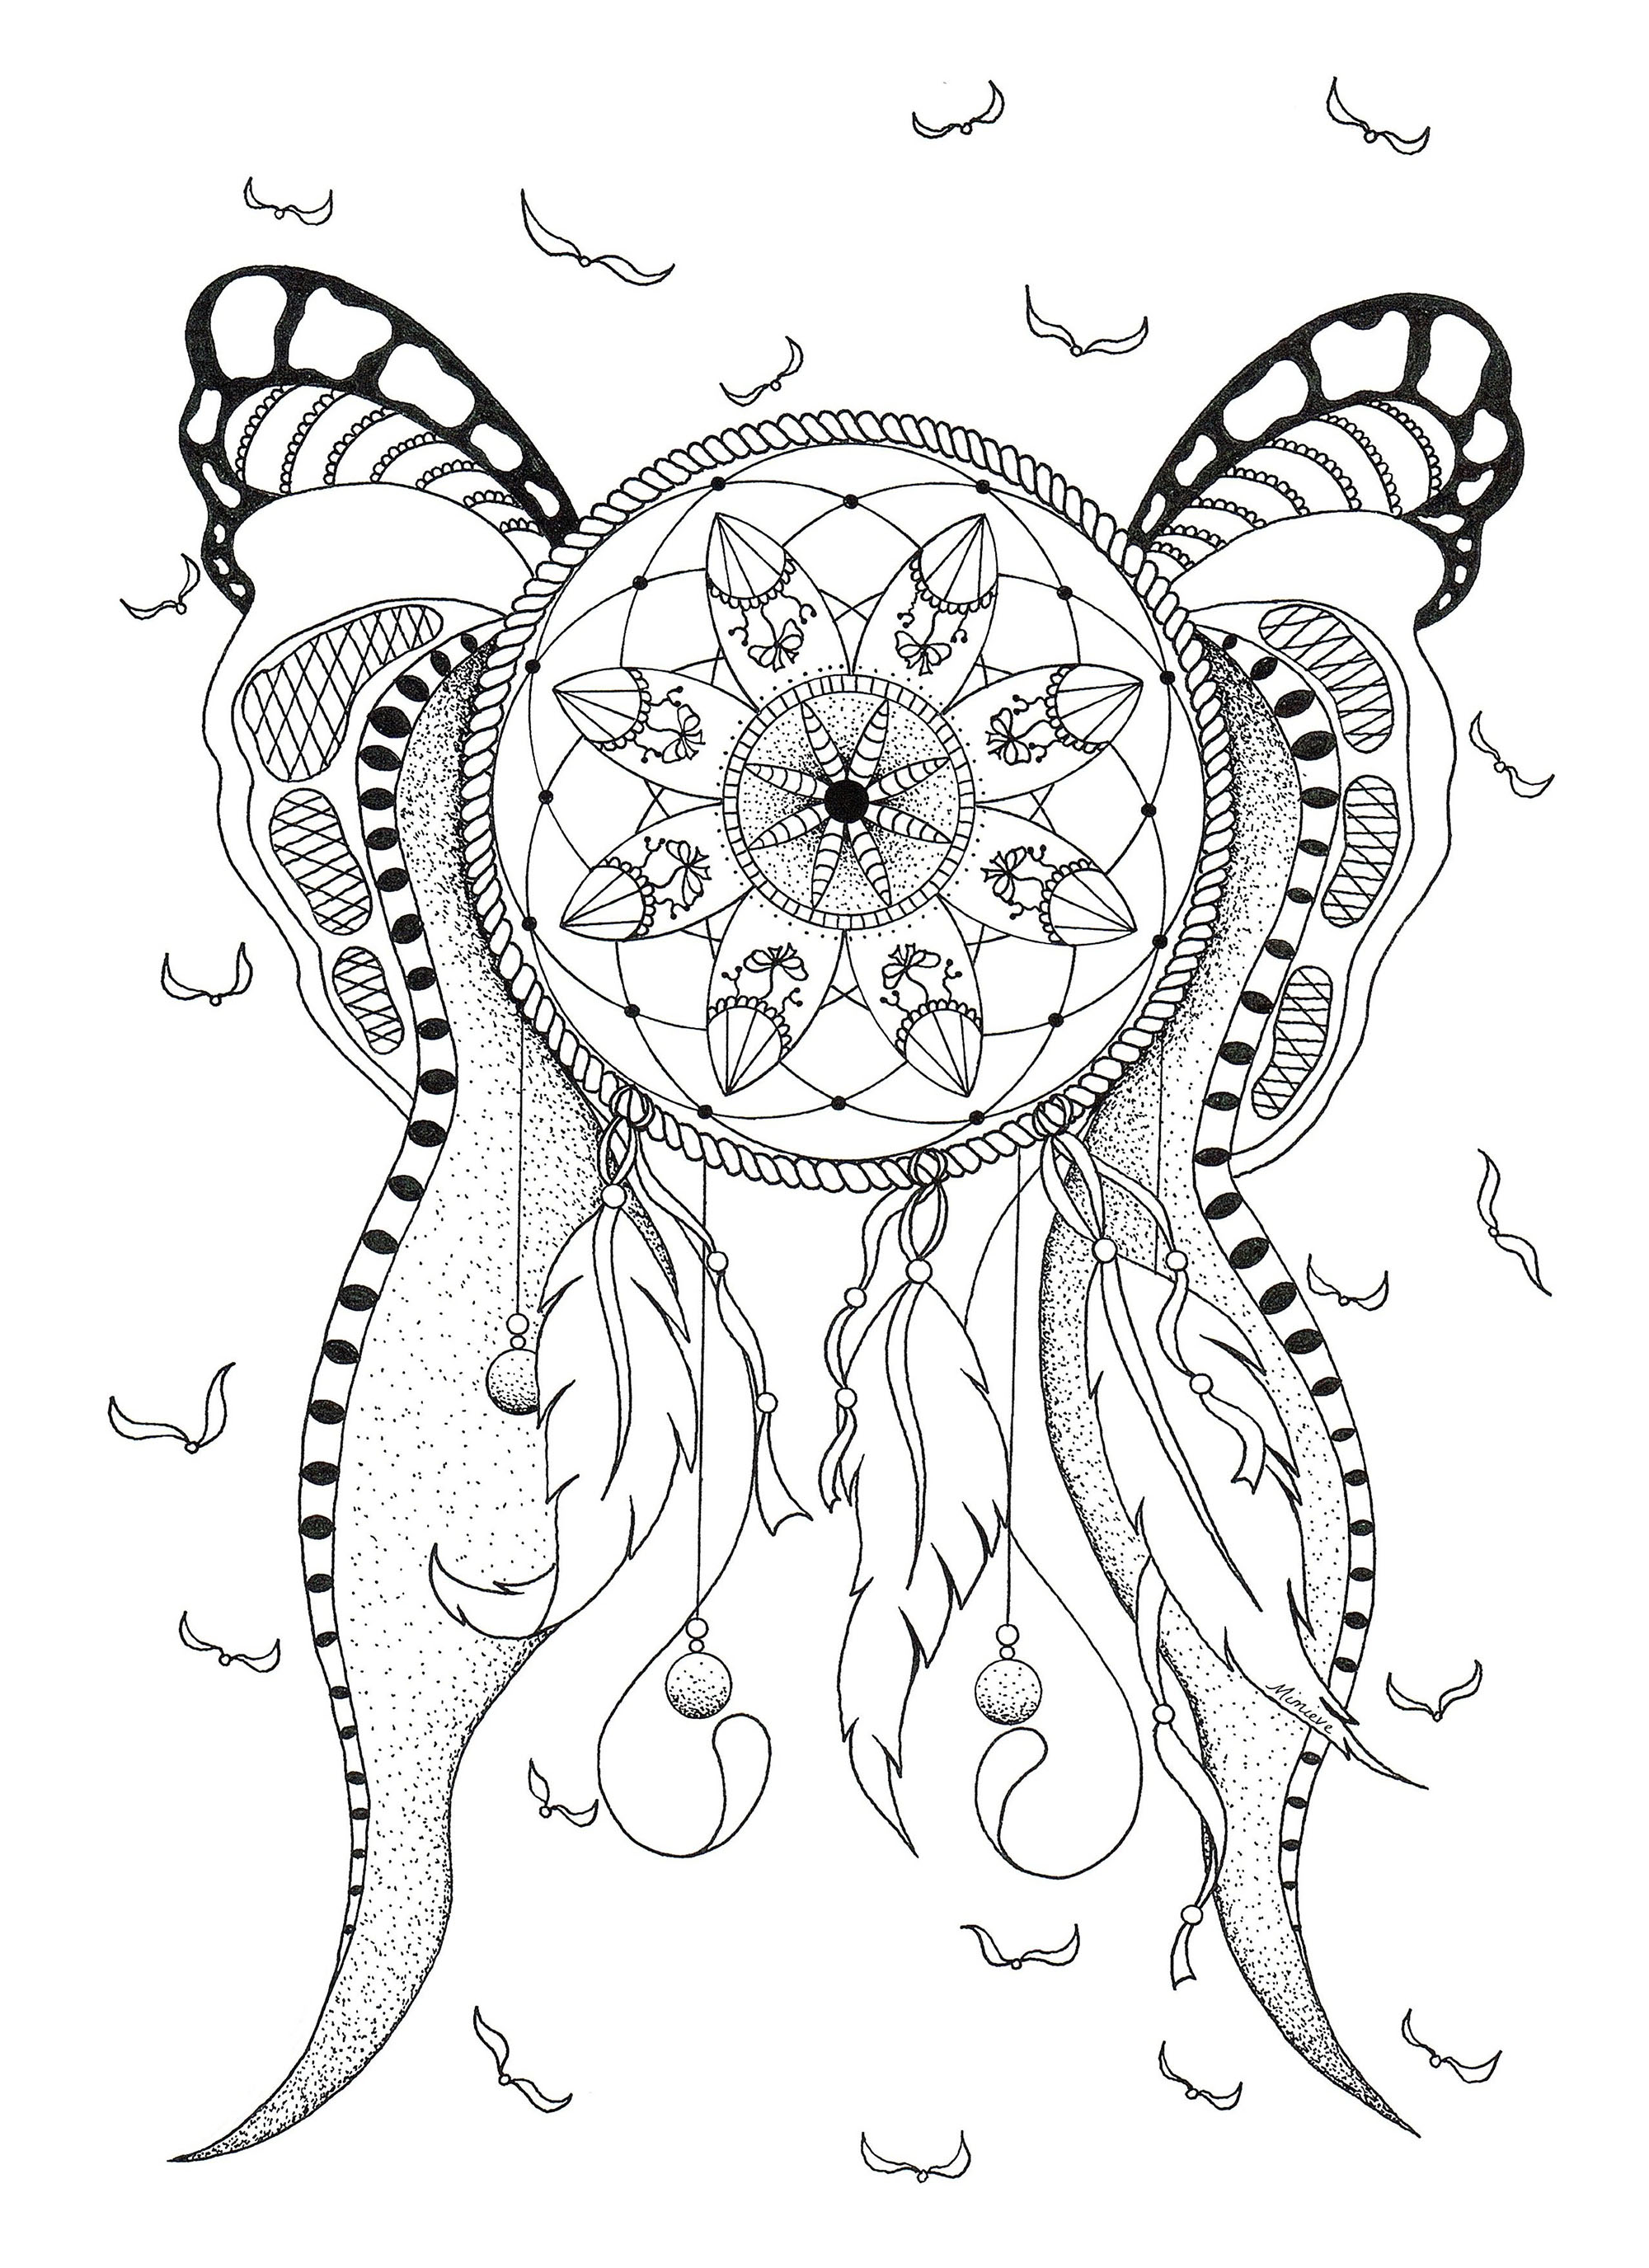 Dreamcatcher Dreamcatchers Adult Coloring Pages